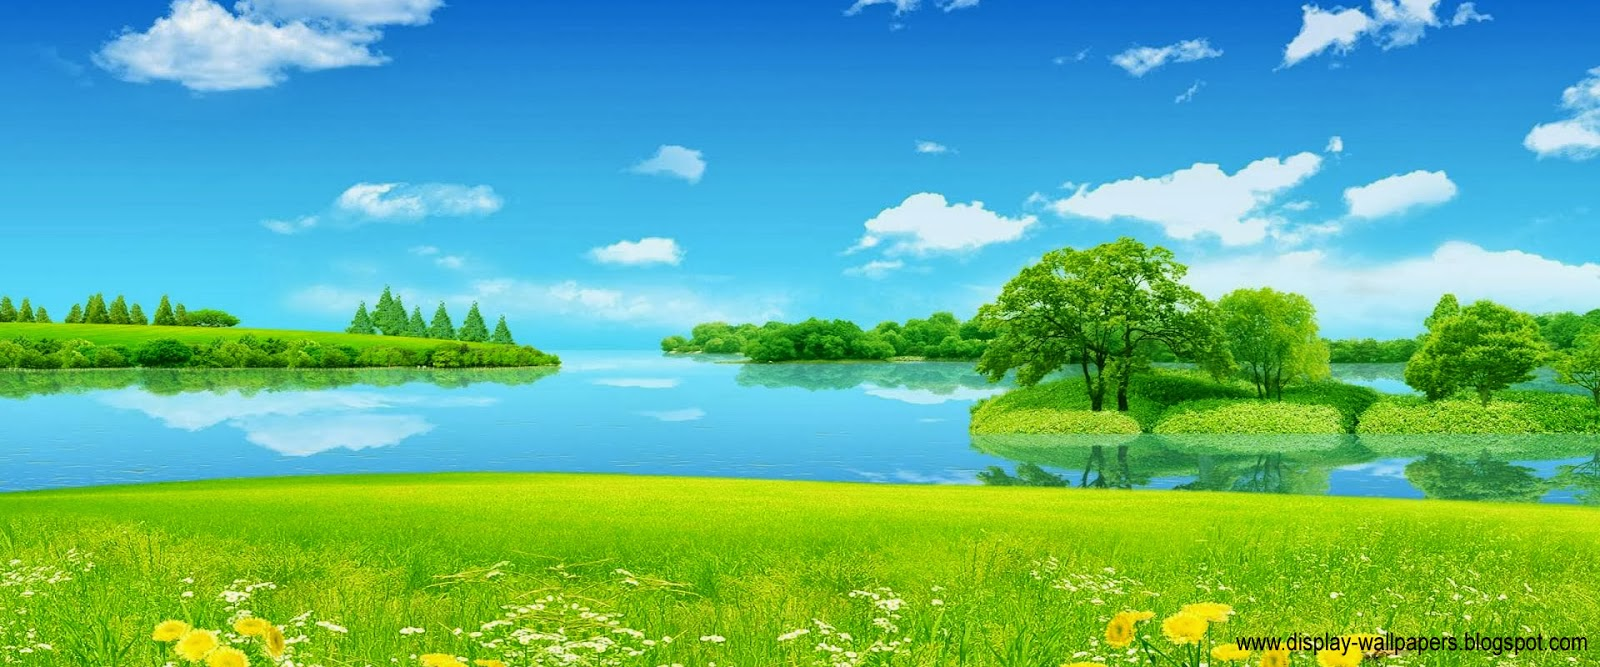 Wallpapers For Pc Animated Wallpapers For Laptop Screen 1600x667